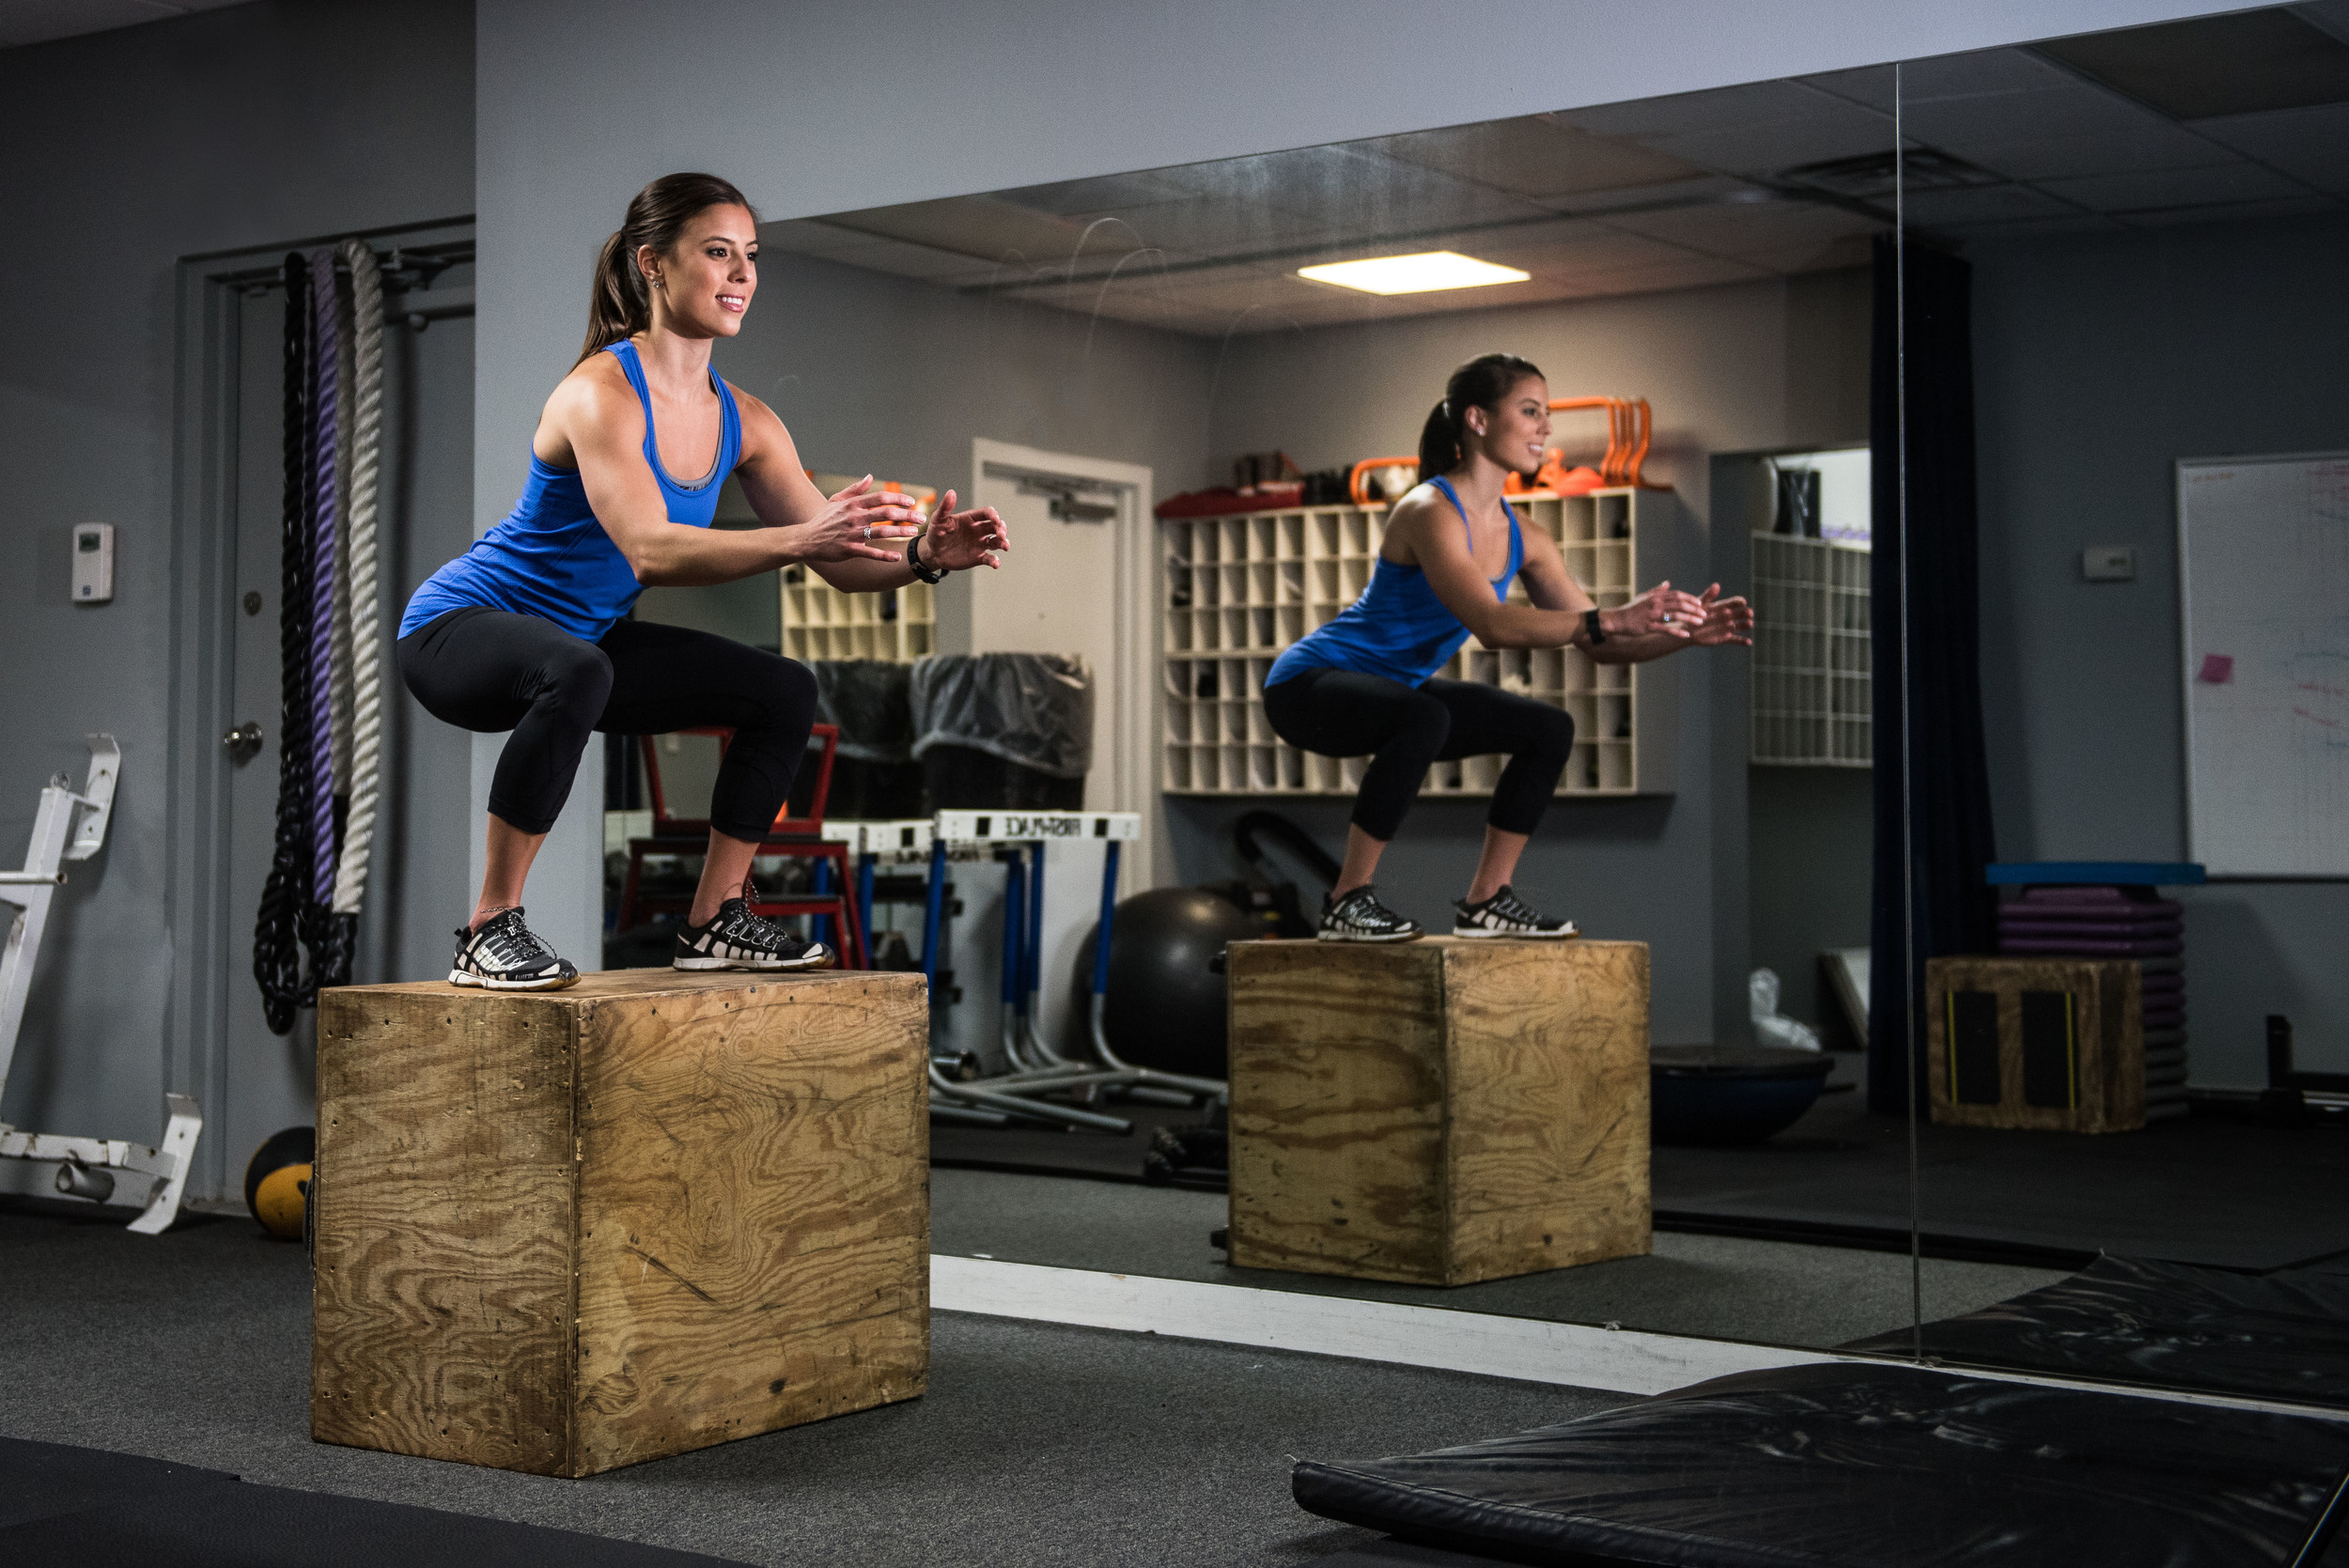 Landing phase of the Box Jump (Exercise #3) - note proper squat position